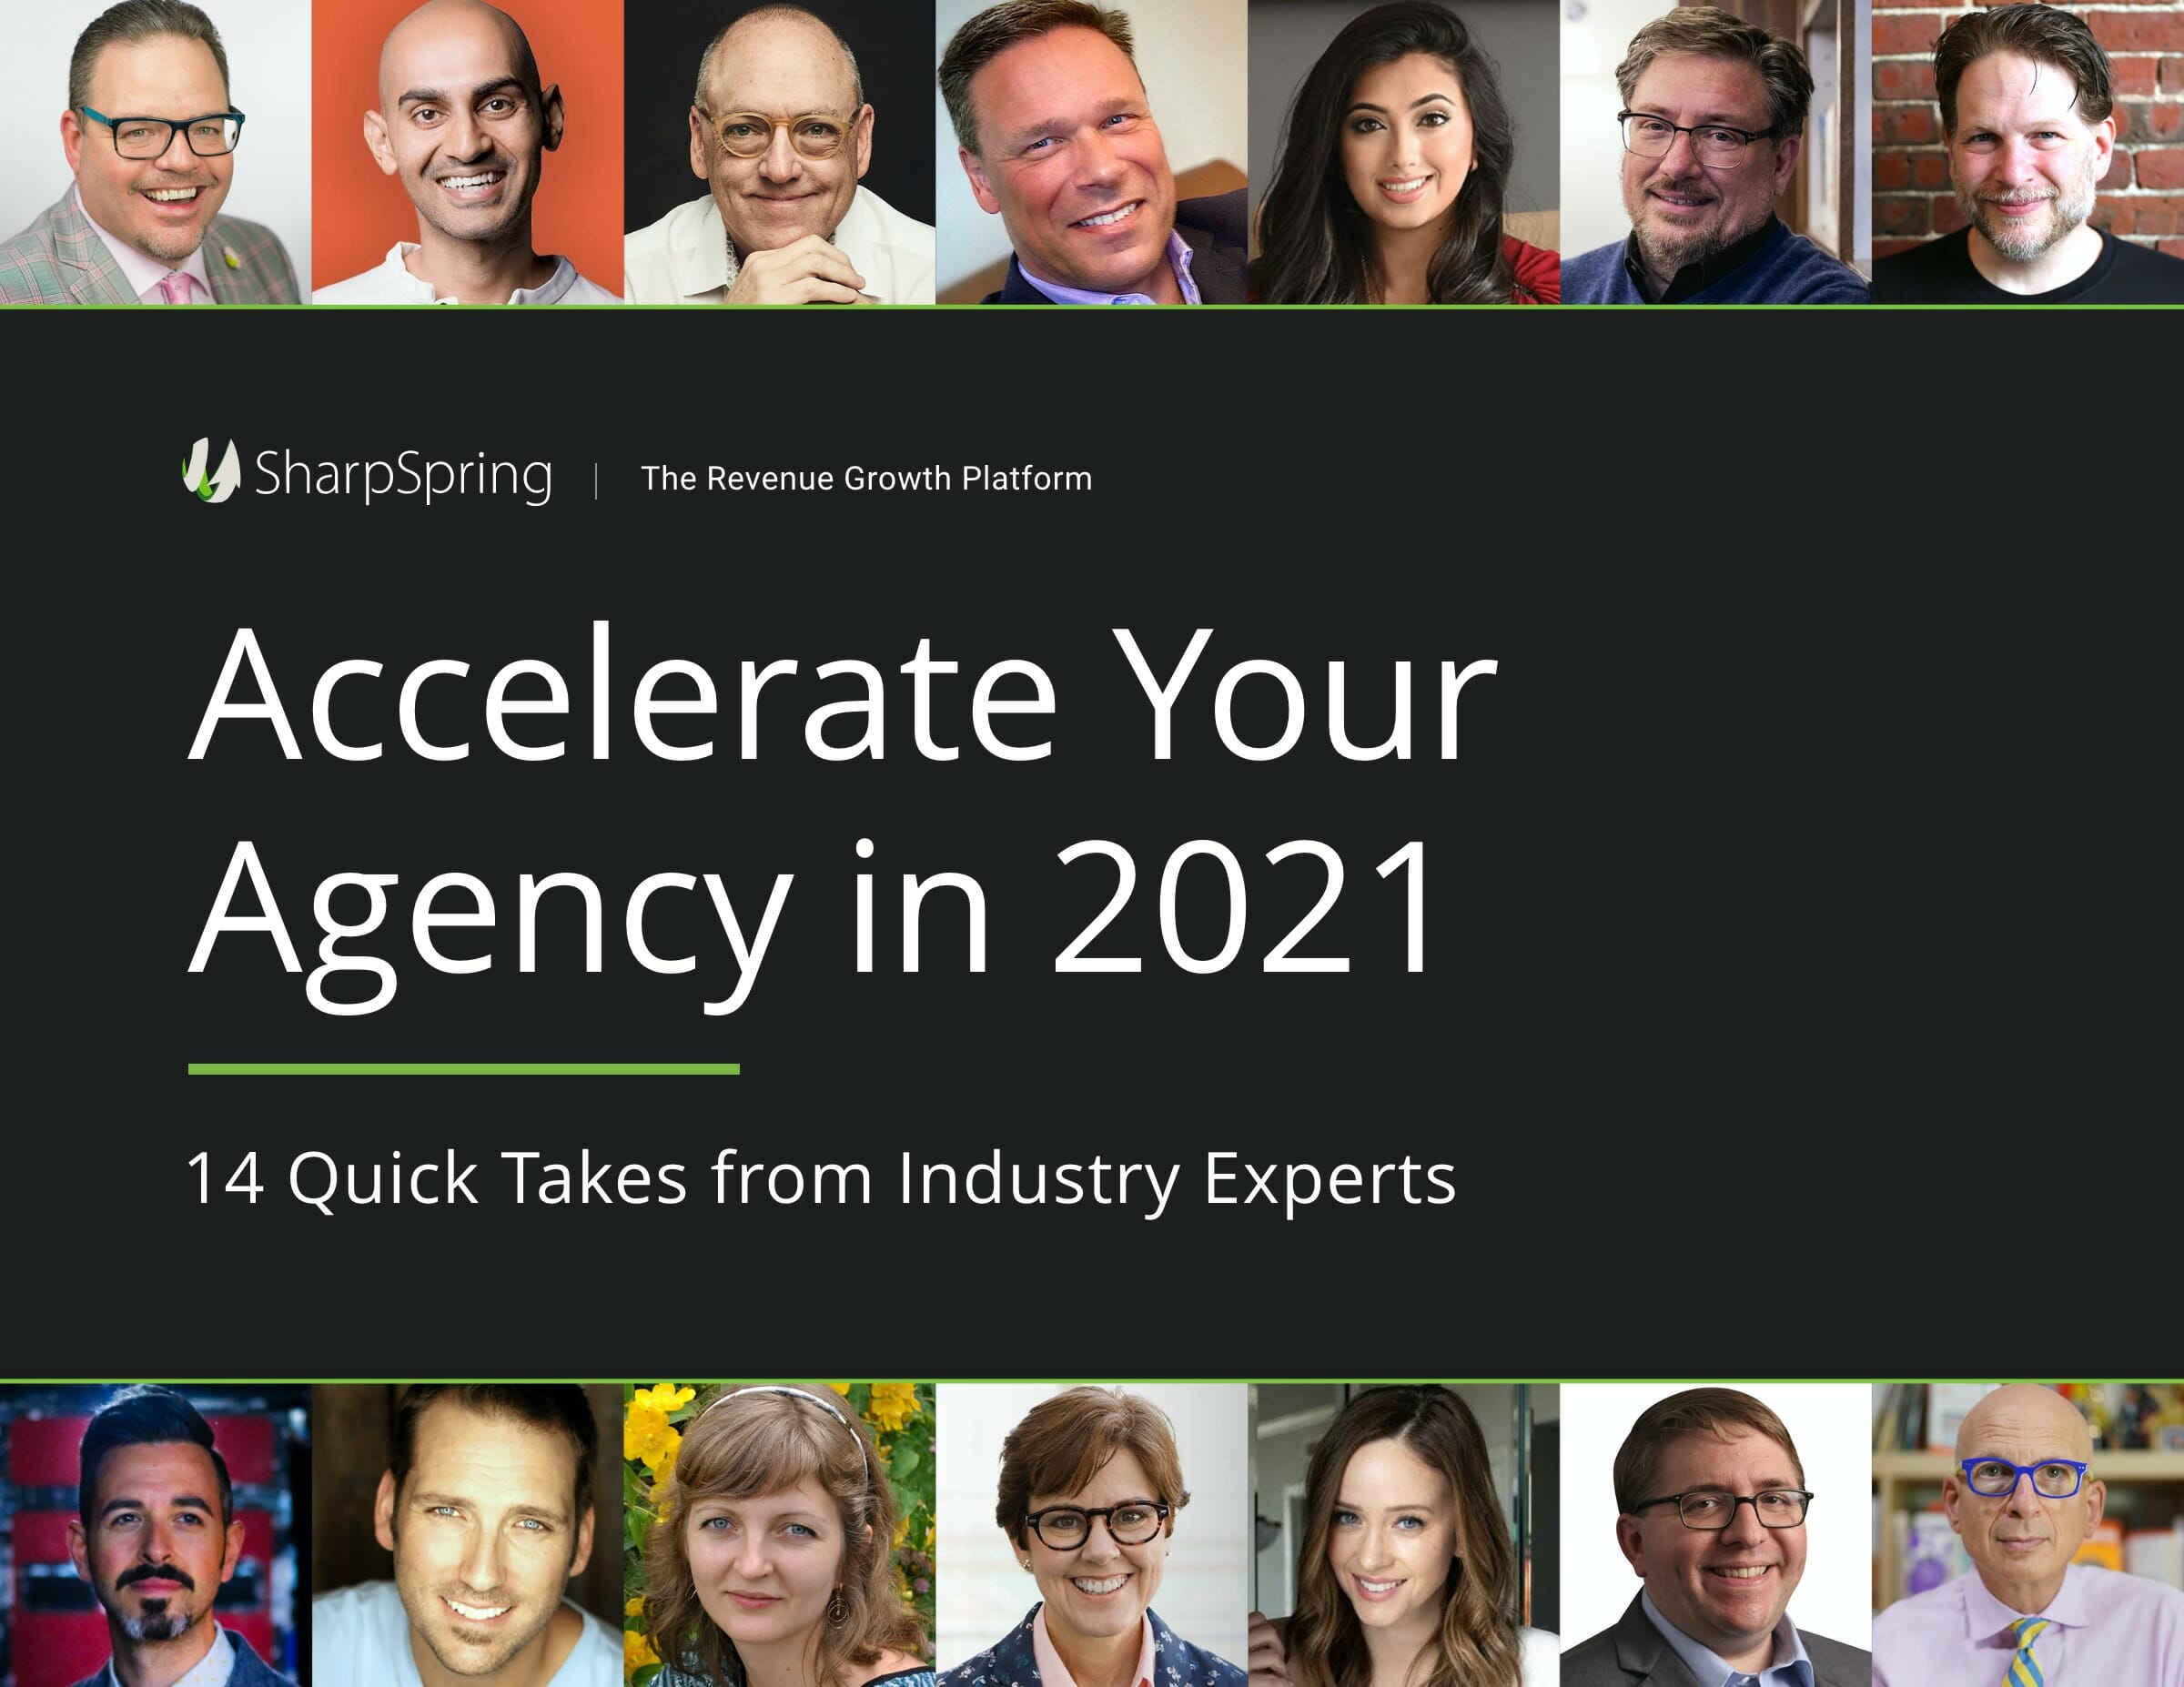 Top Services Smart Agencies are Offering Now